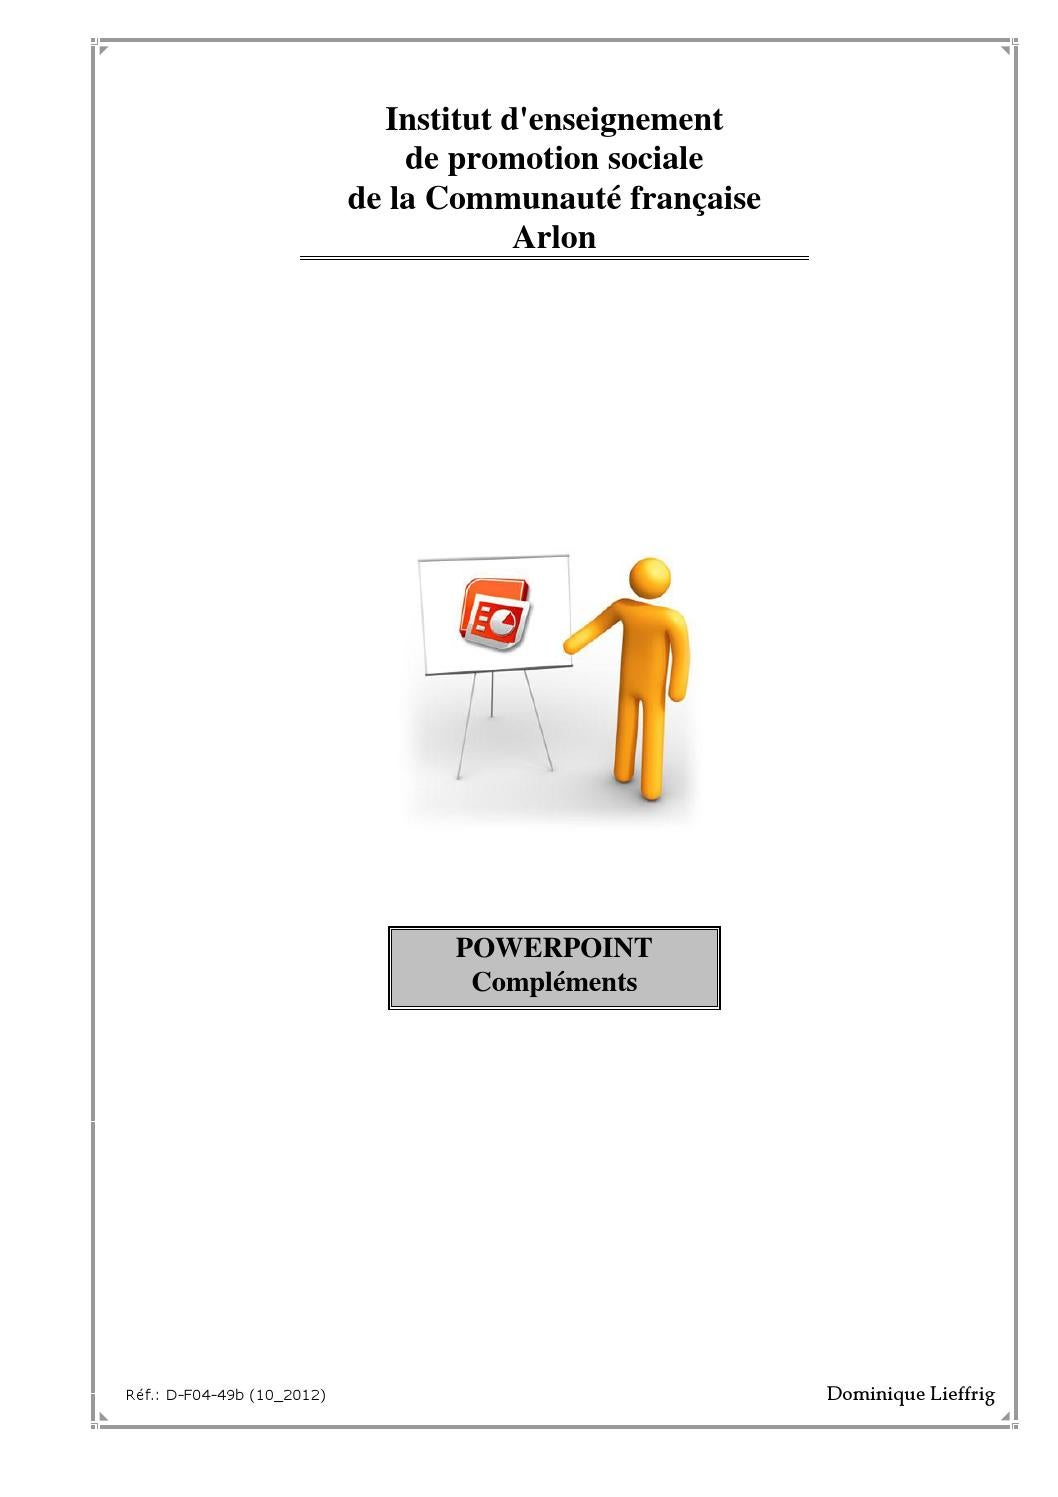 Syl powerpoint compl avec pg by infomobi - Issuu